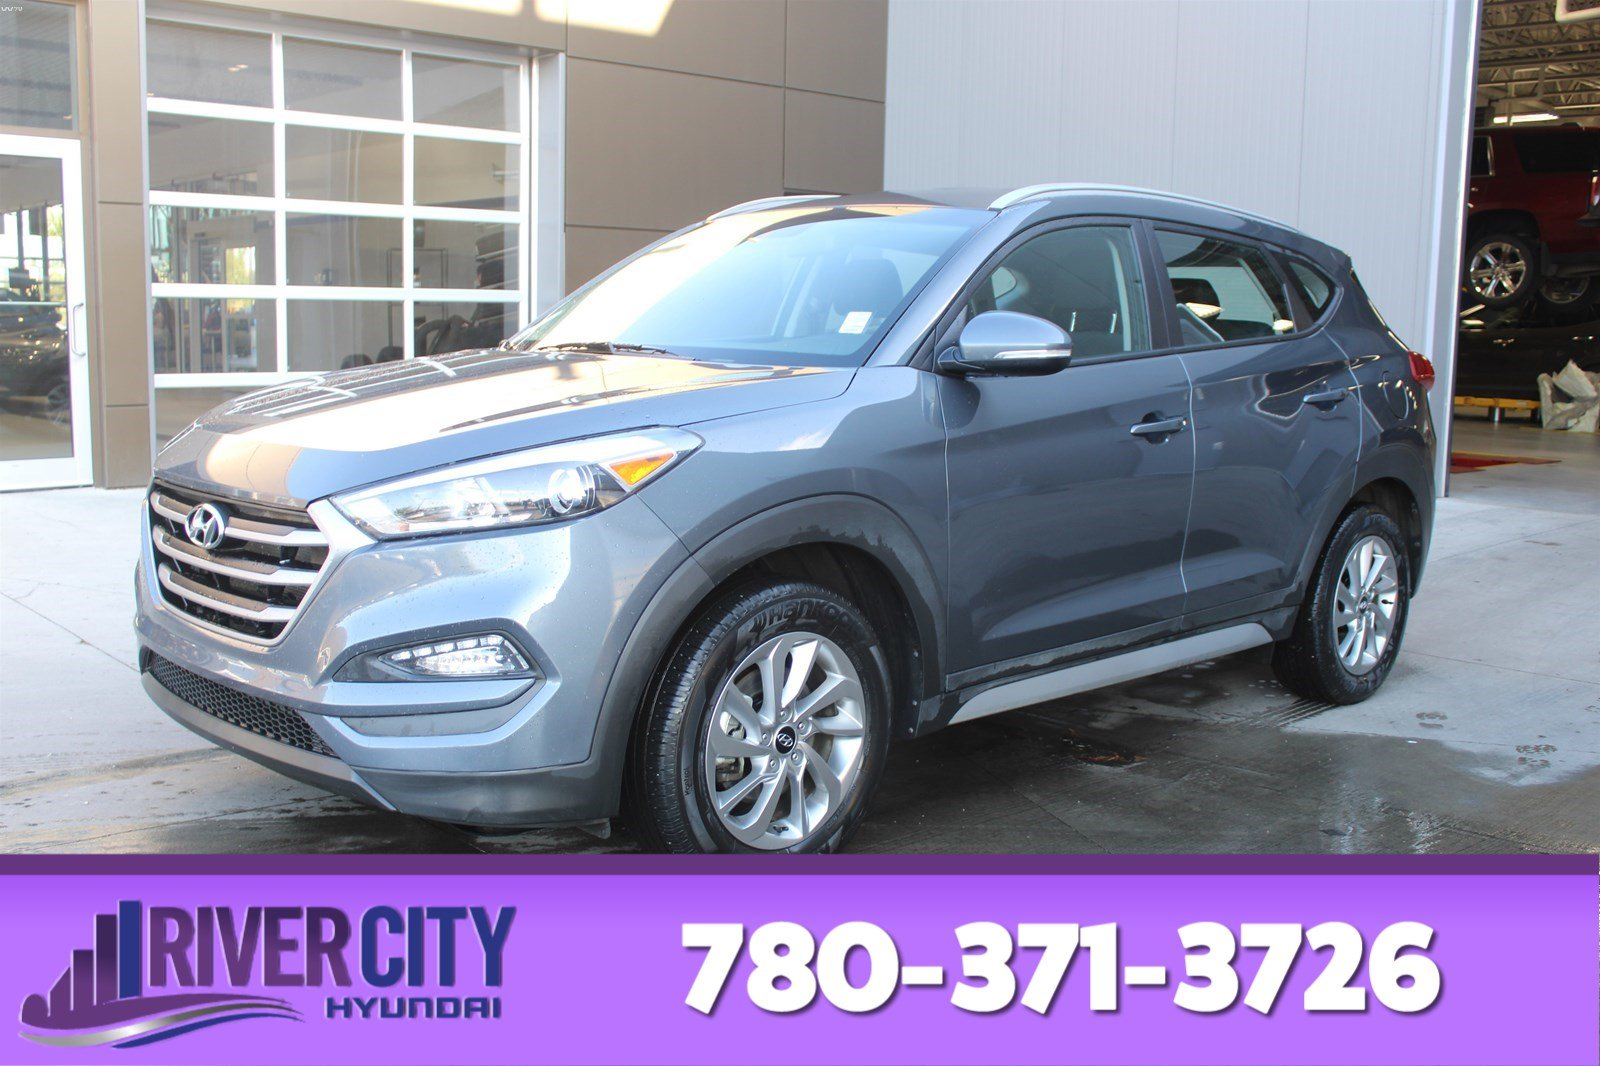 Certified Pre-Owned 2018 Hyundai Tucson AWD PREMIUM Heated Seats, Back-up Cam, Bluetooth, A/C,